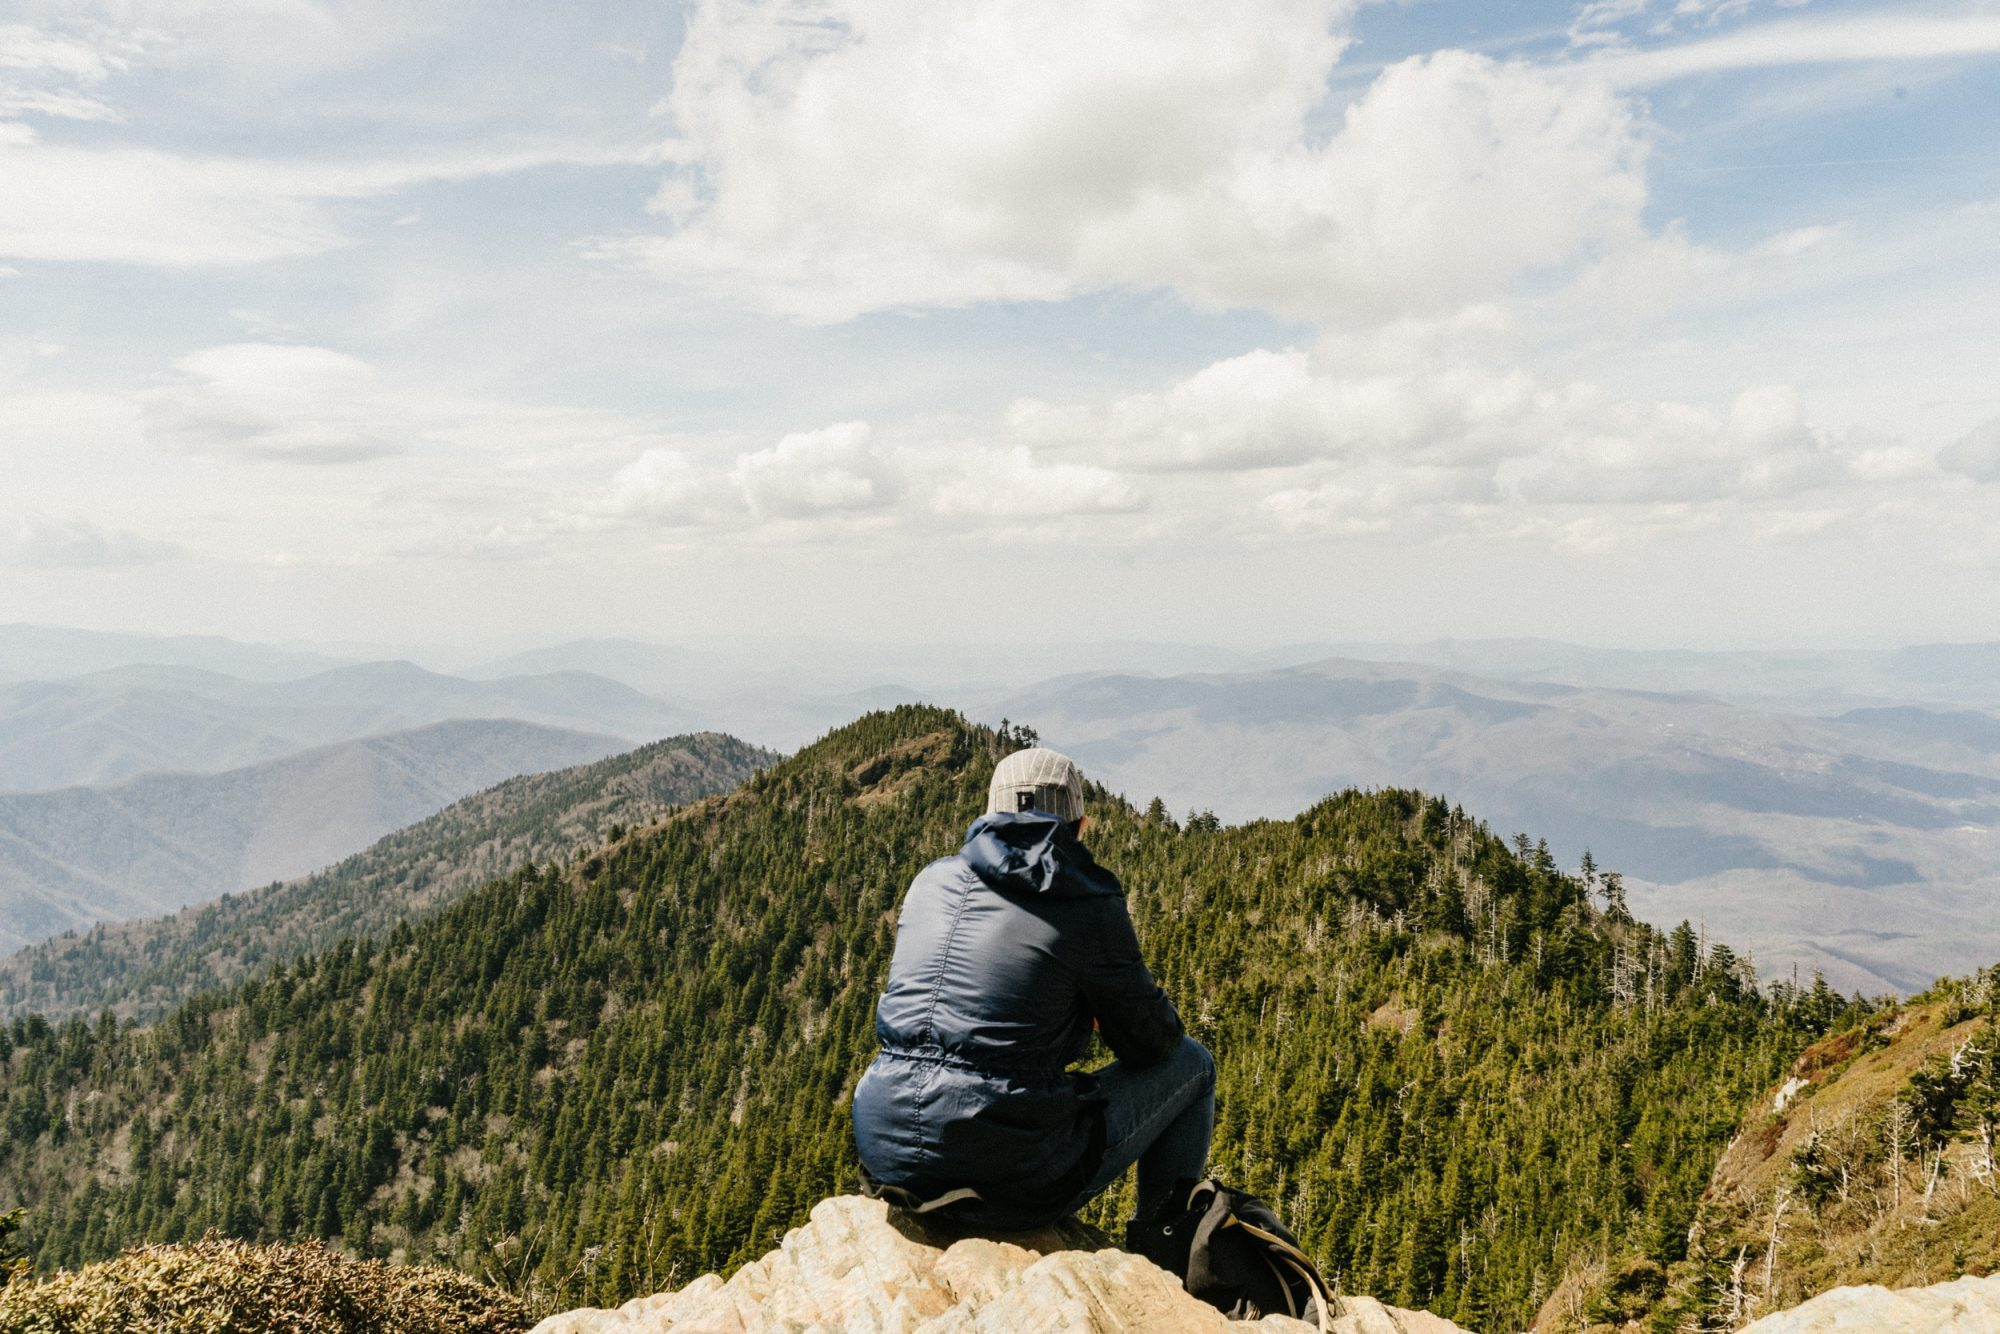 man sitting on top of a hill overlooking green mountains